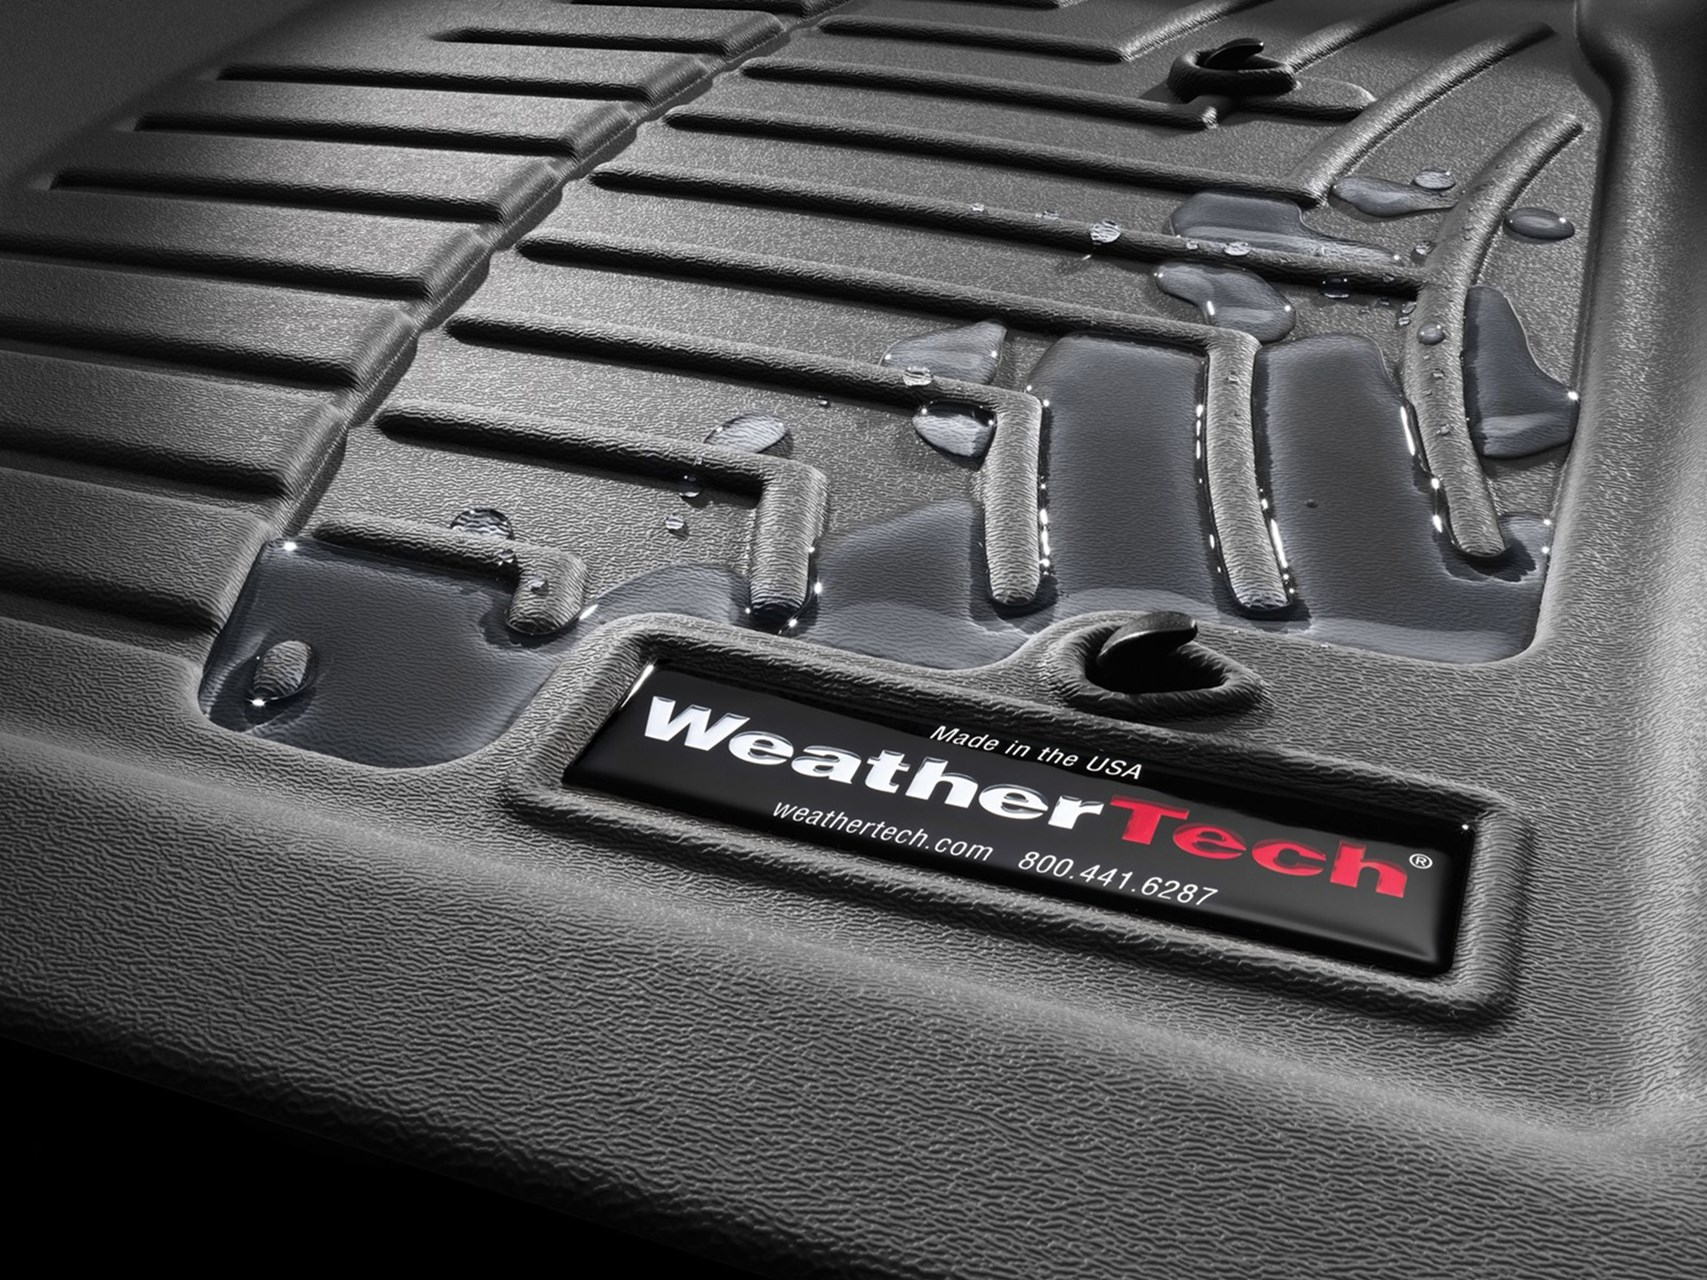 by up measured floors mats close laser floor floorliner a weathertech ram for digitalfit